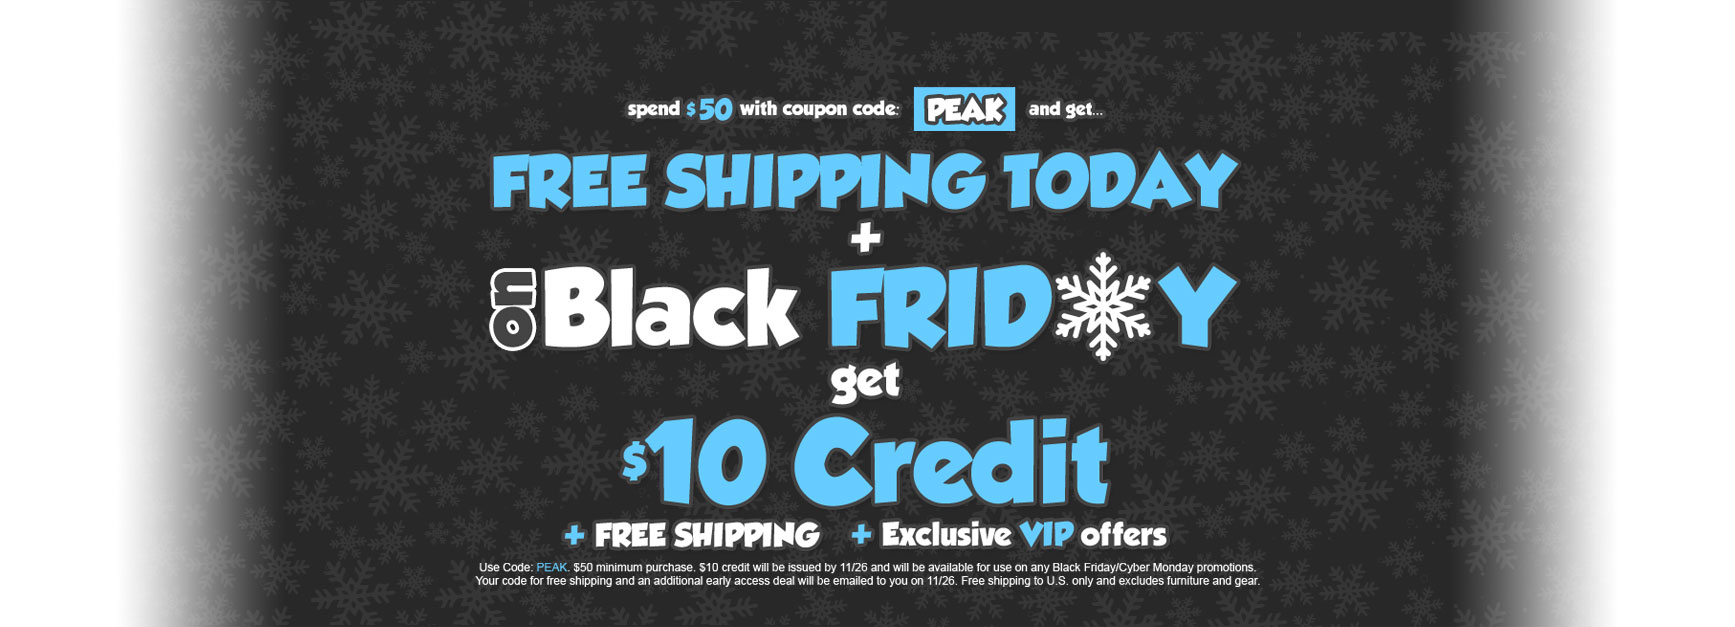 Pre-Black Friday Sale - $10 Credit for Black Friday + Free Shipping for Black Friday + Exclusive VIP offers - shop today with coupon code: peak on orders $50+